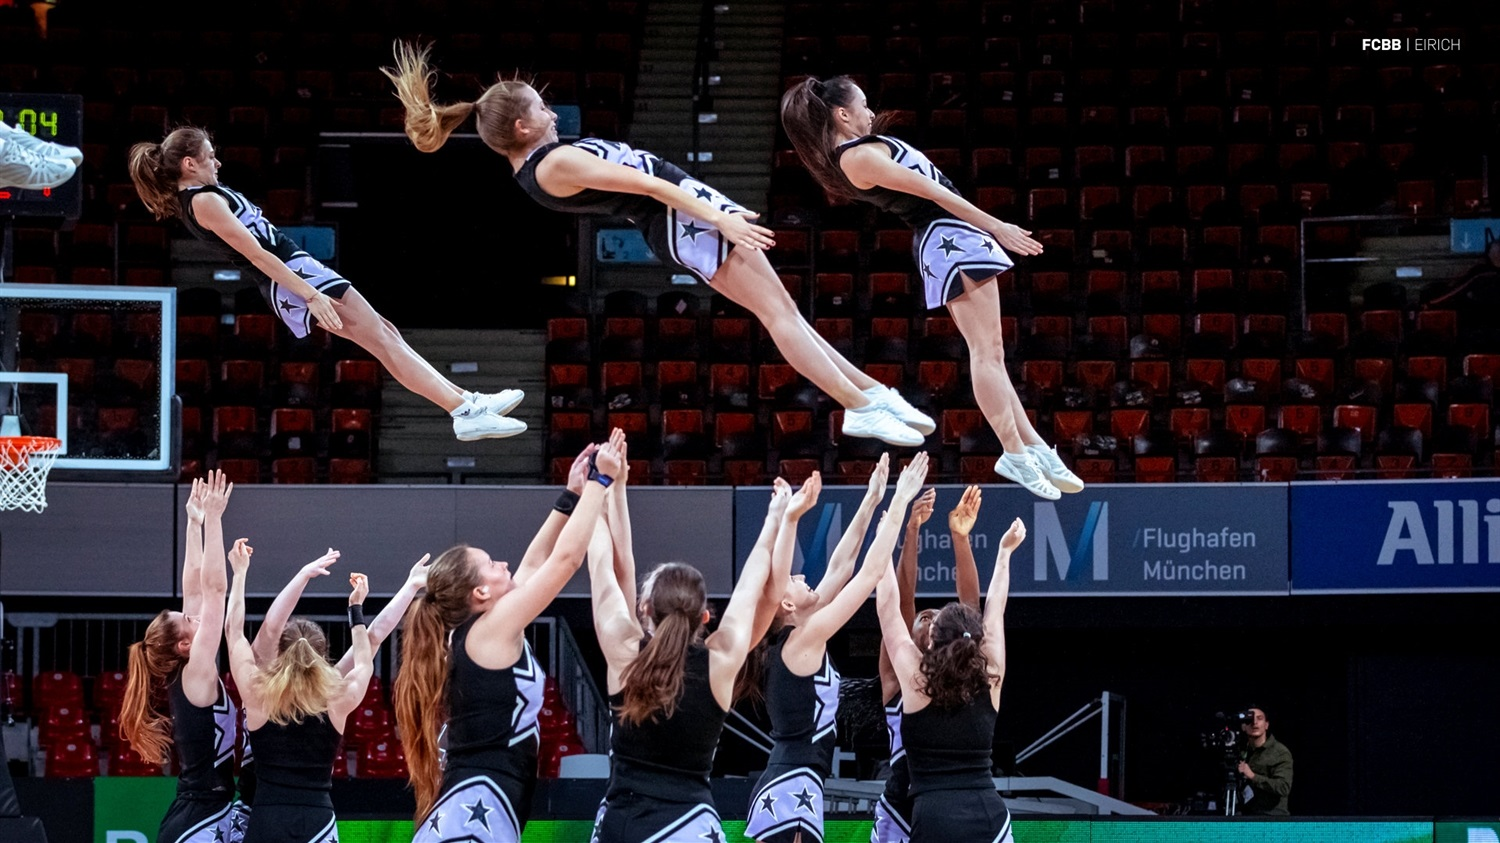 Cheerleaders - ANGT Munich 2019 (photo FCBB - Eirich) JT18